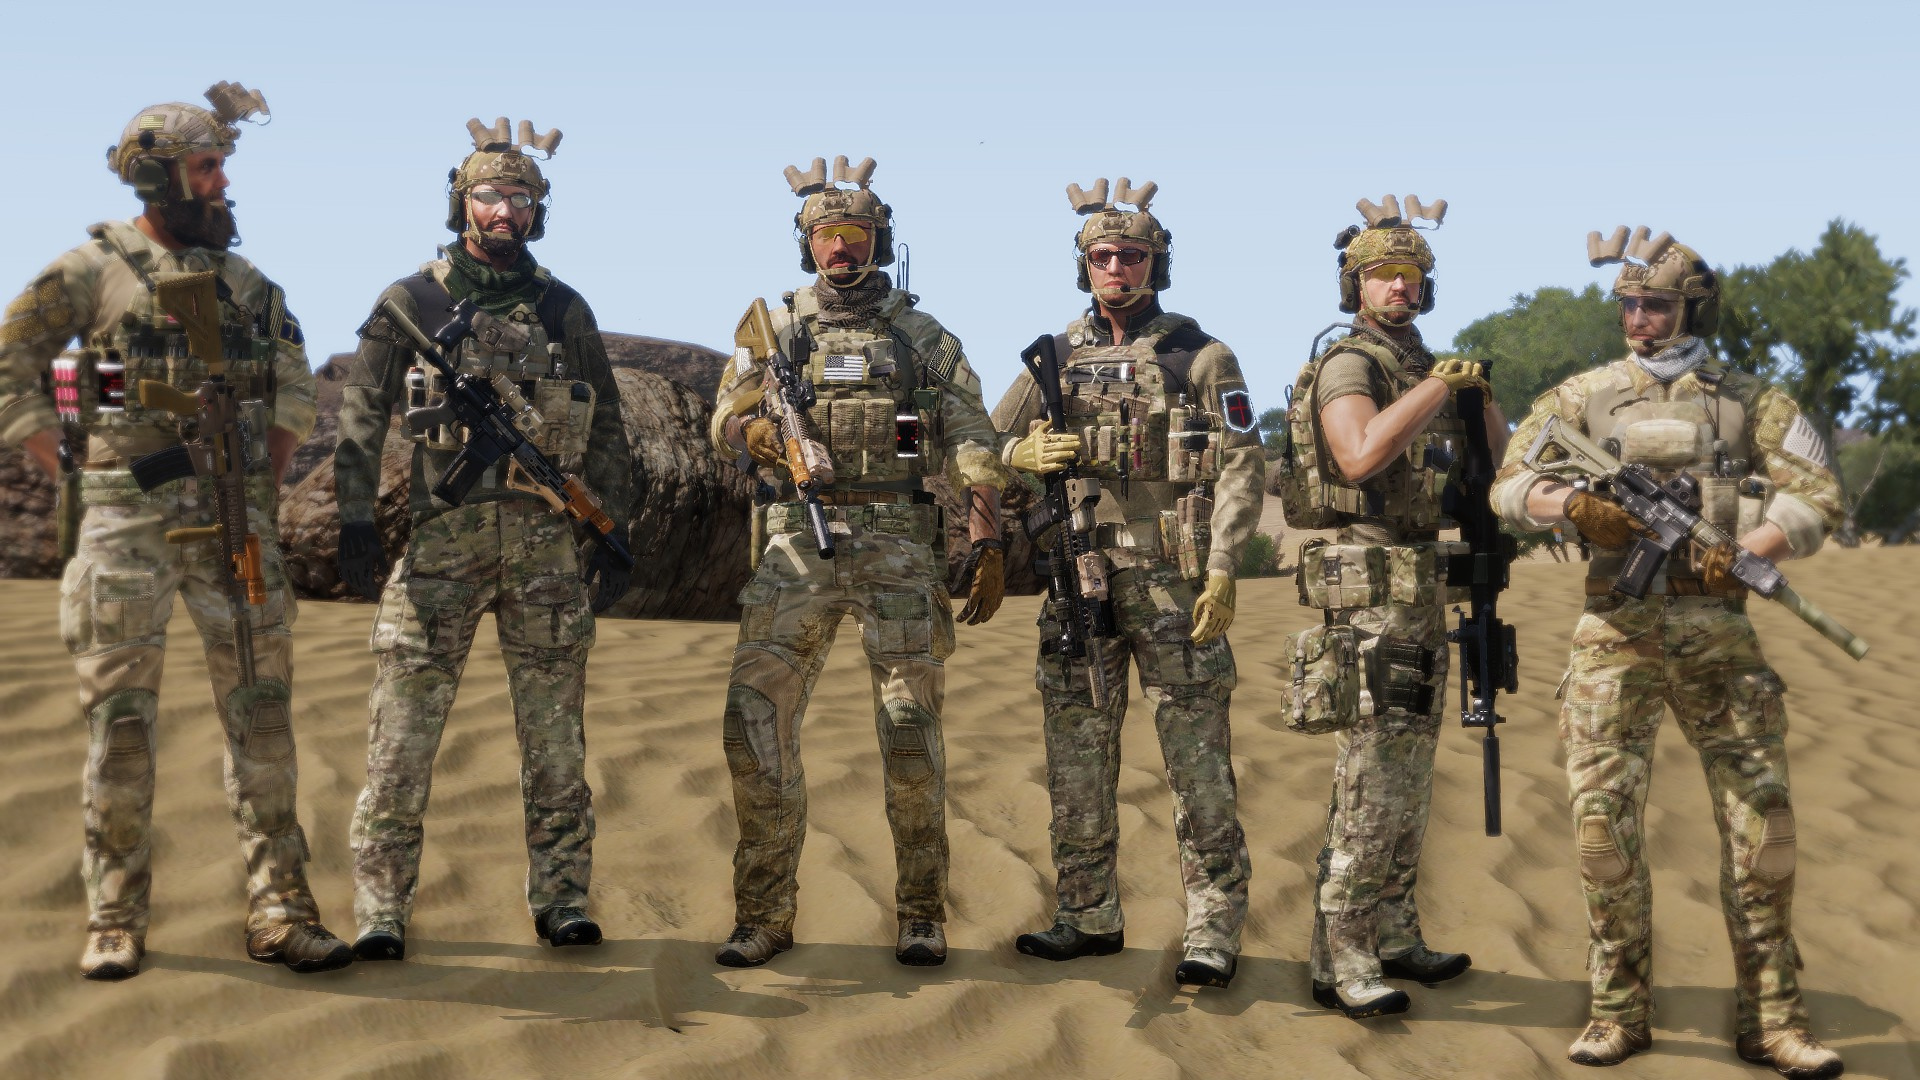 Arma 3 Photography Pictures only NO comments And List your